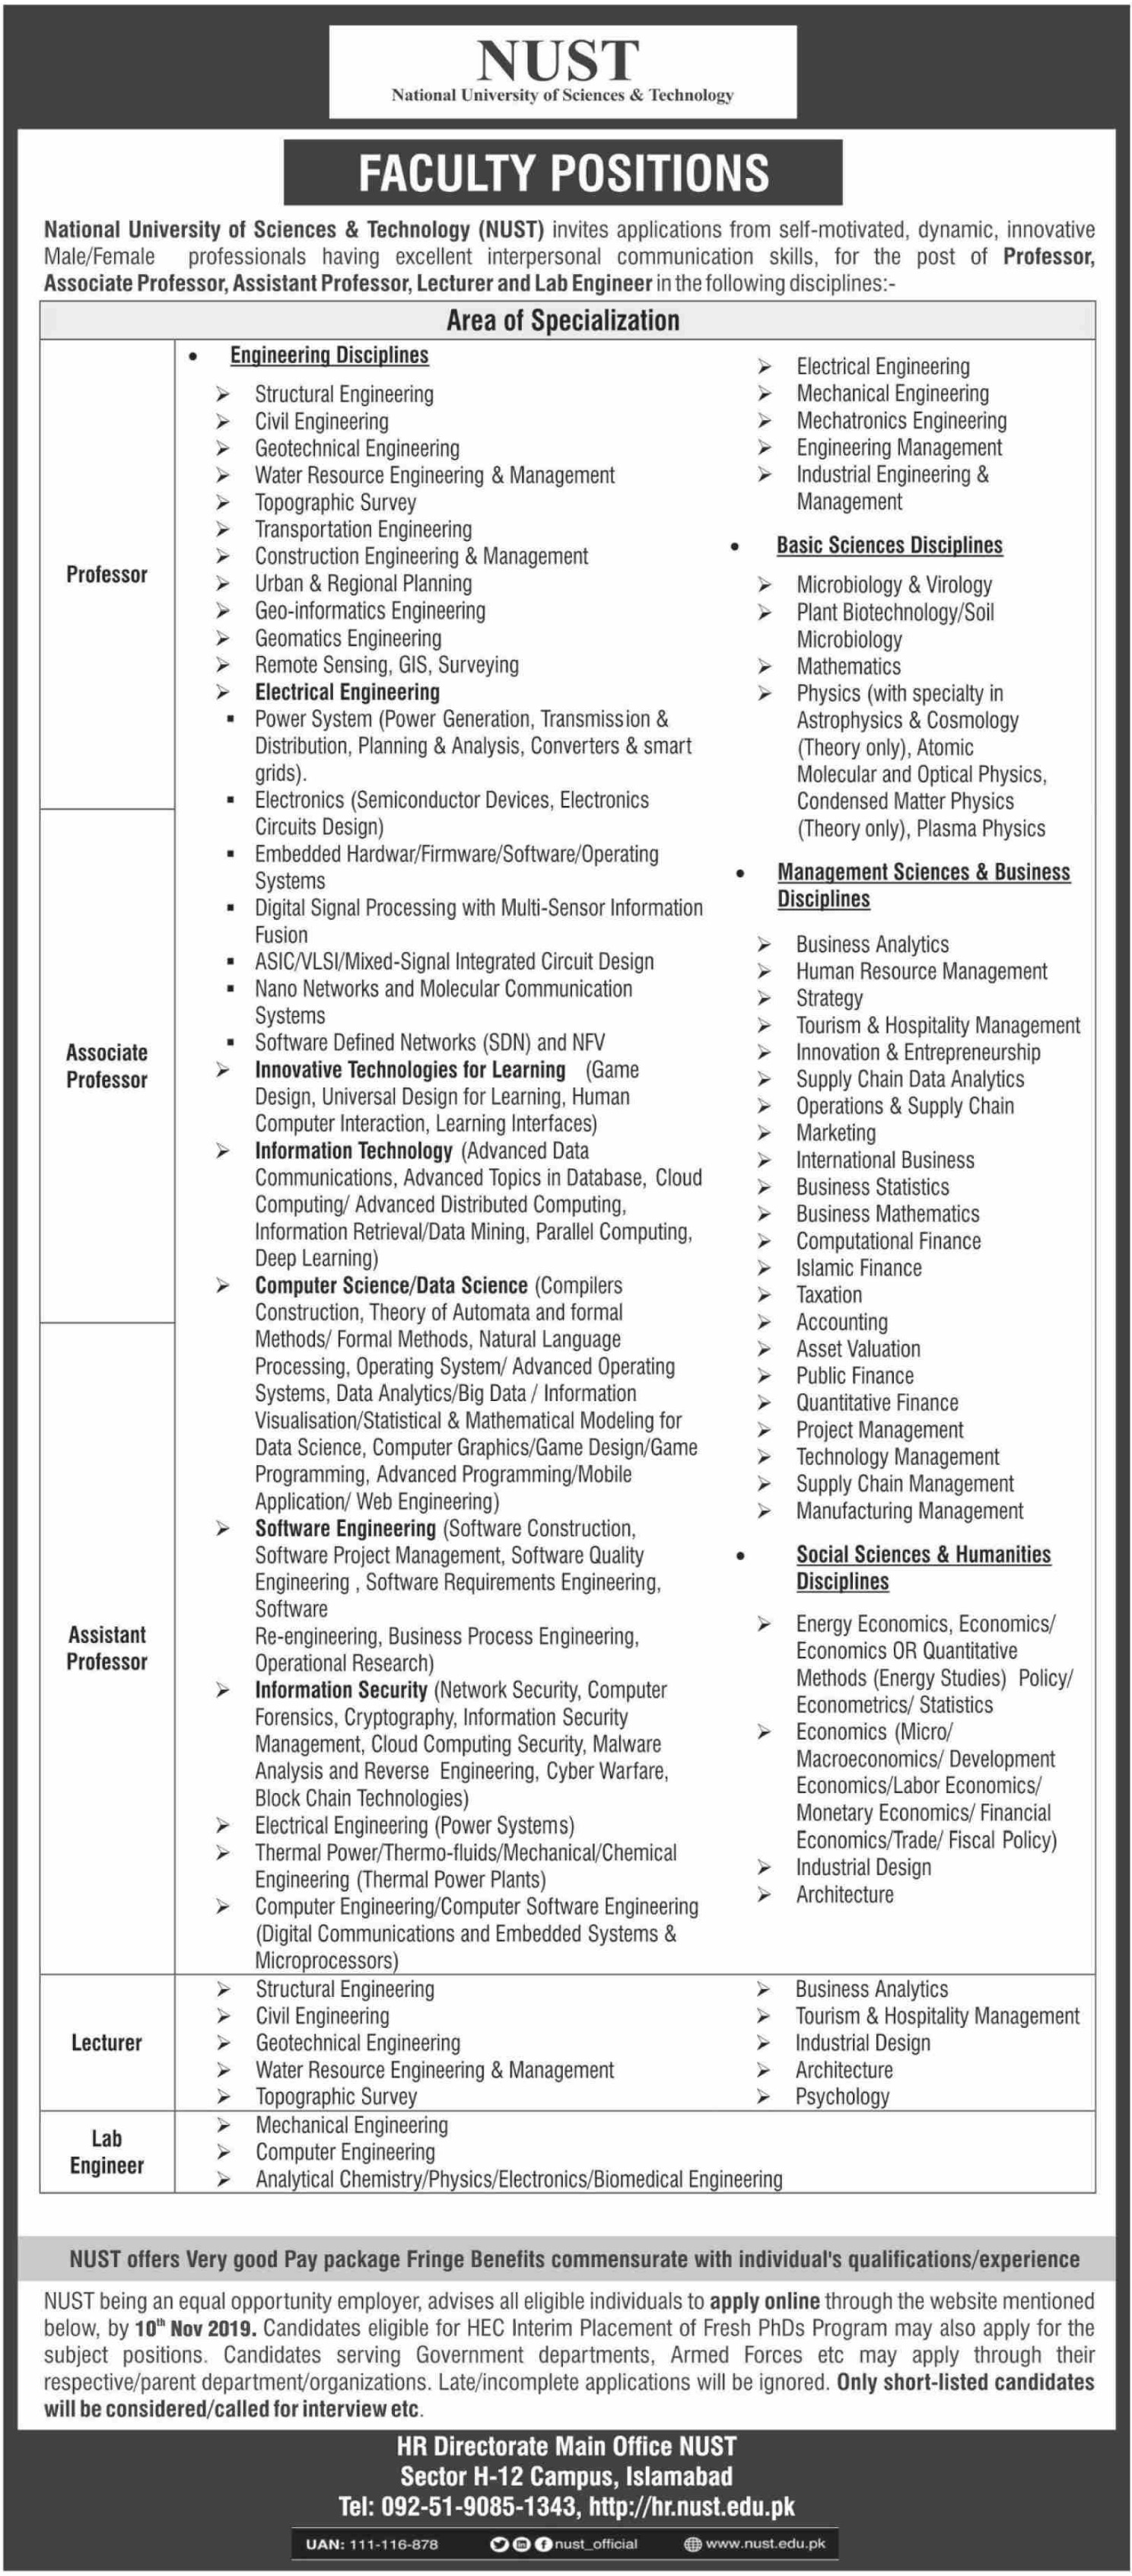 National University of Sciences & Technology NUST Jobs 2019 Apply Online